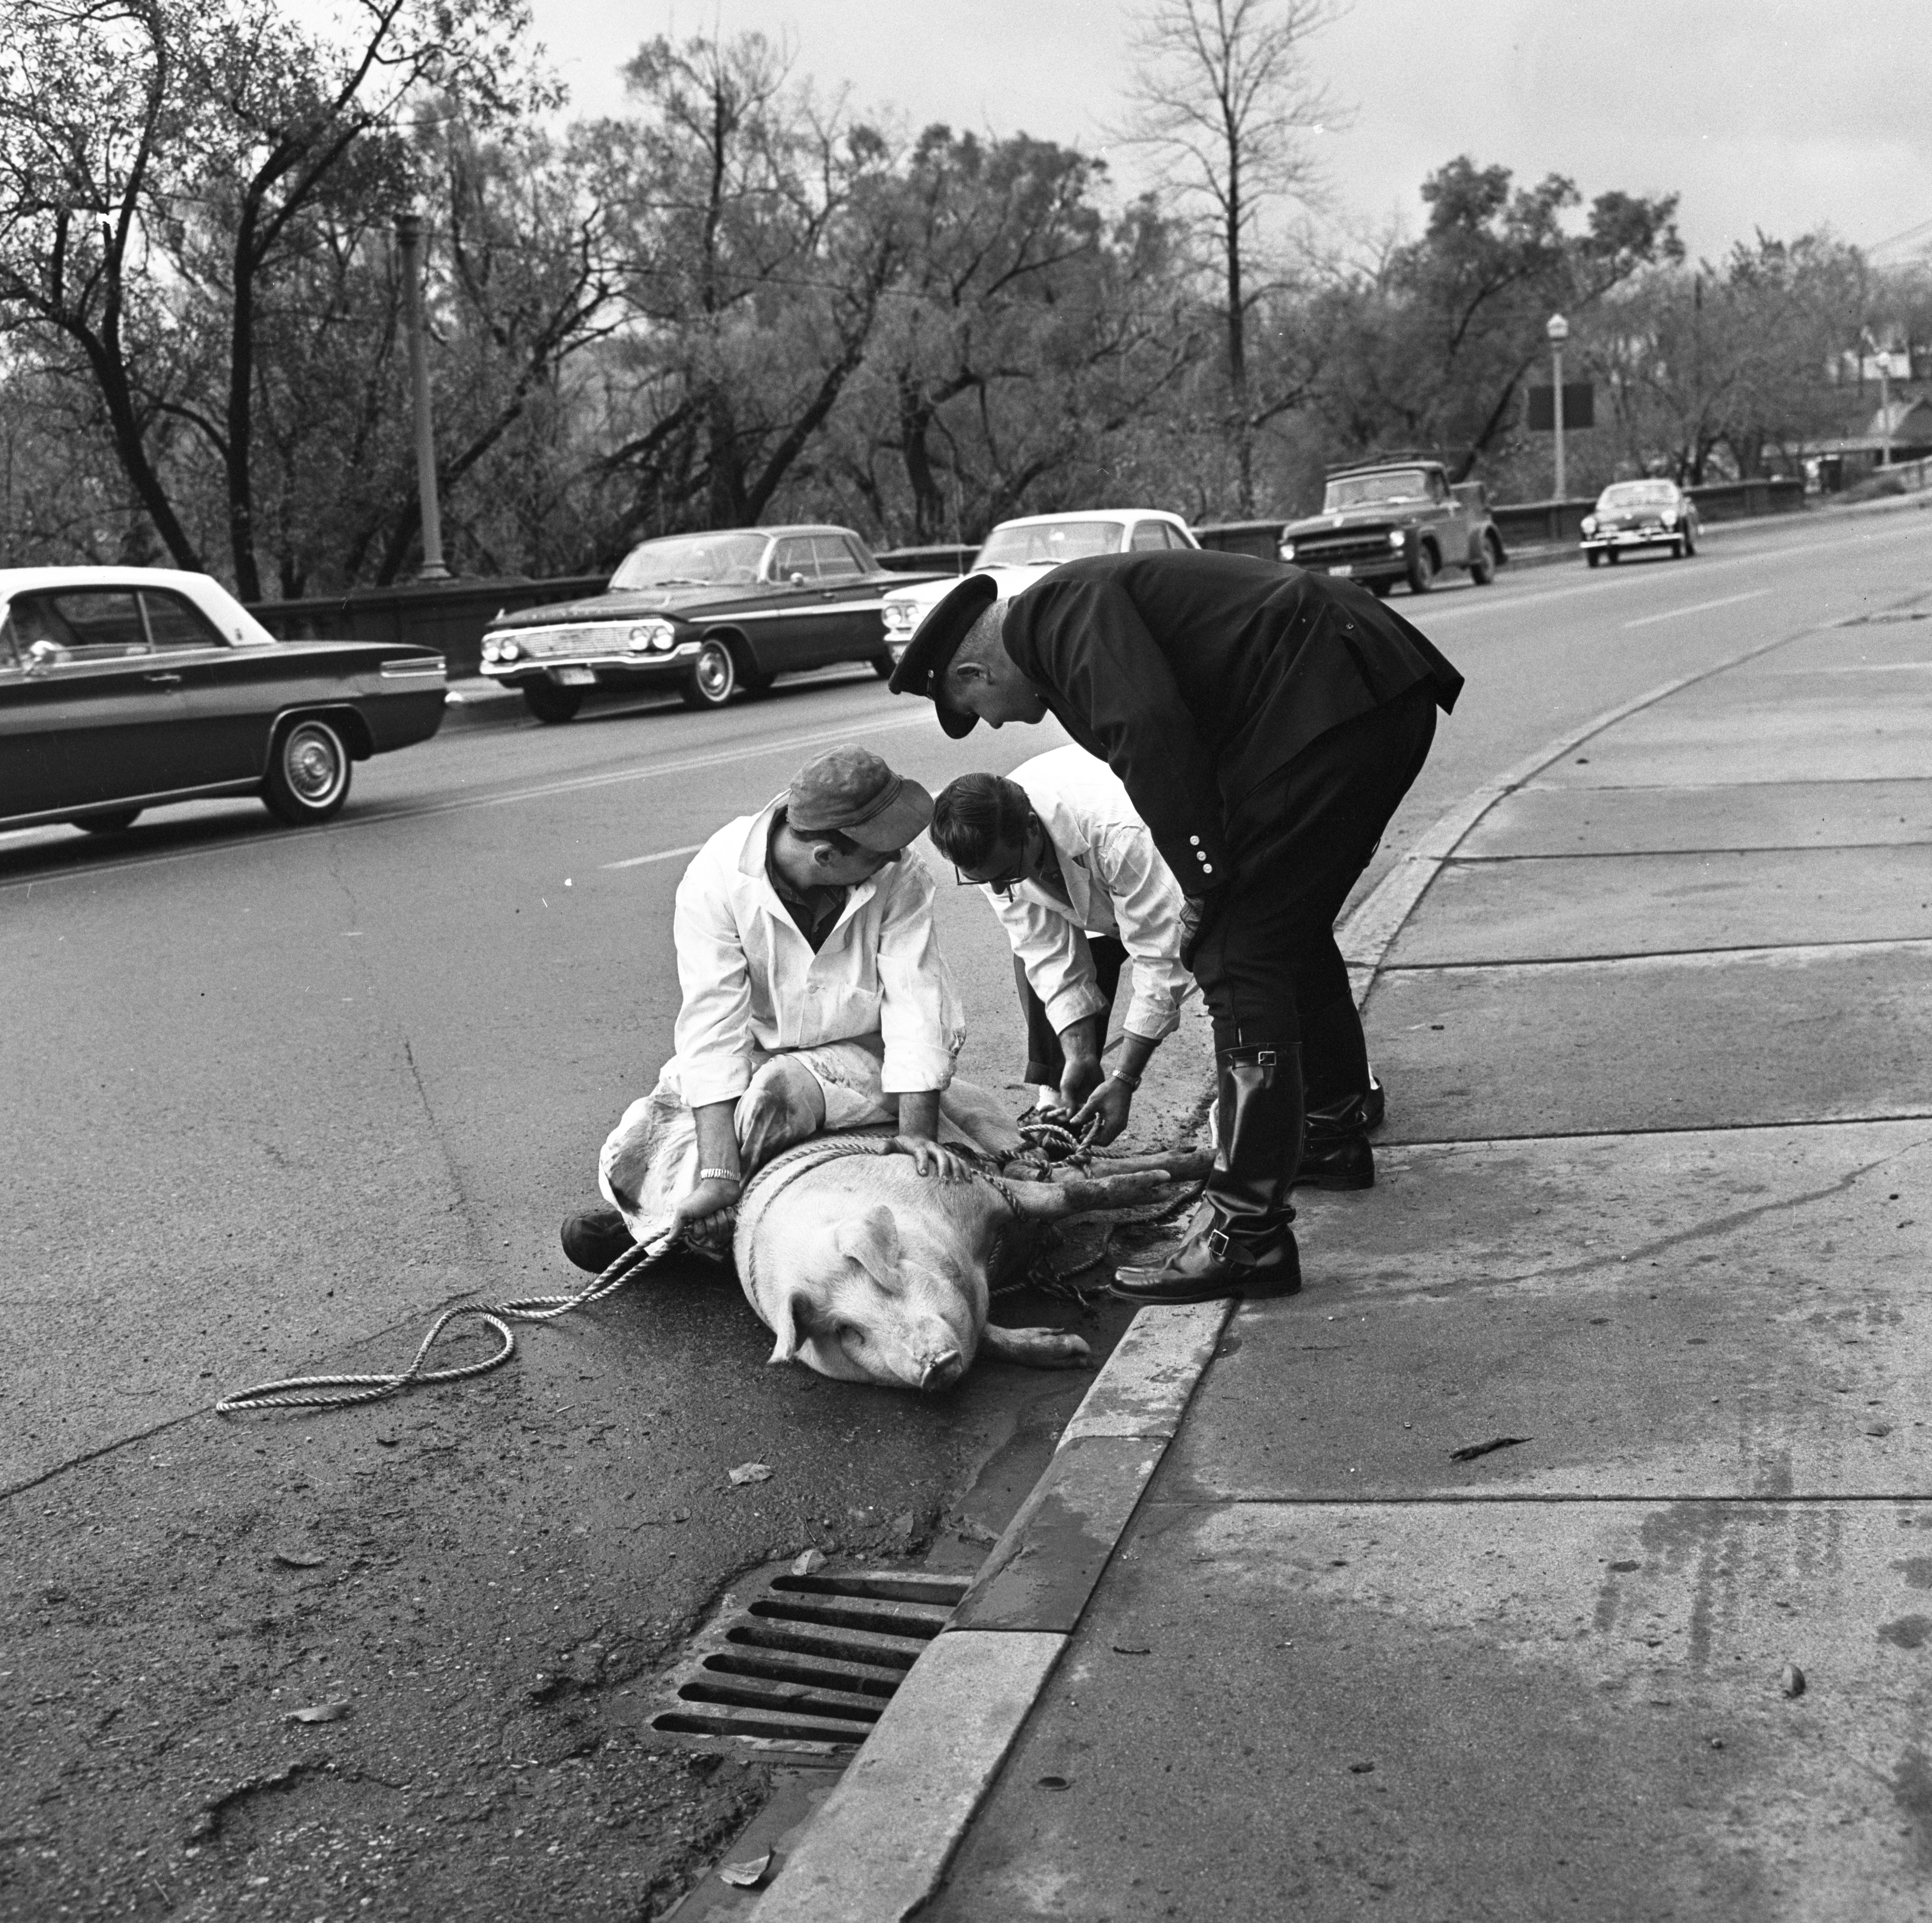 Peters Sausage Company Employees Handle A Loose Pig On Broadway, November 1963 image